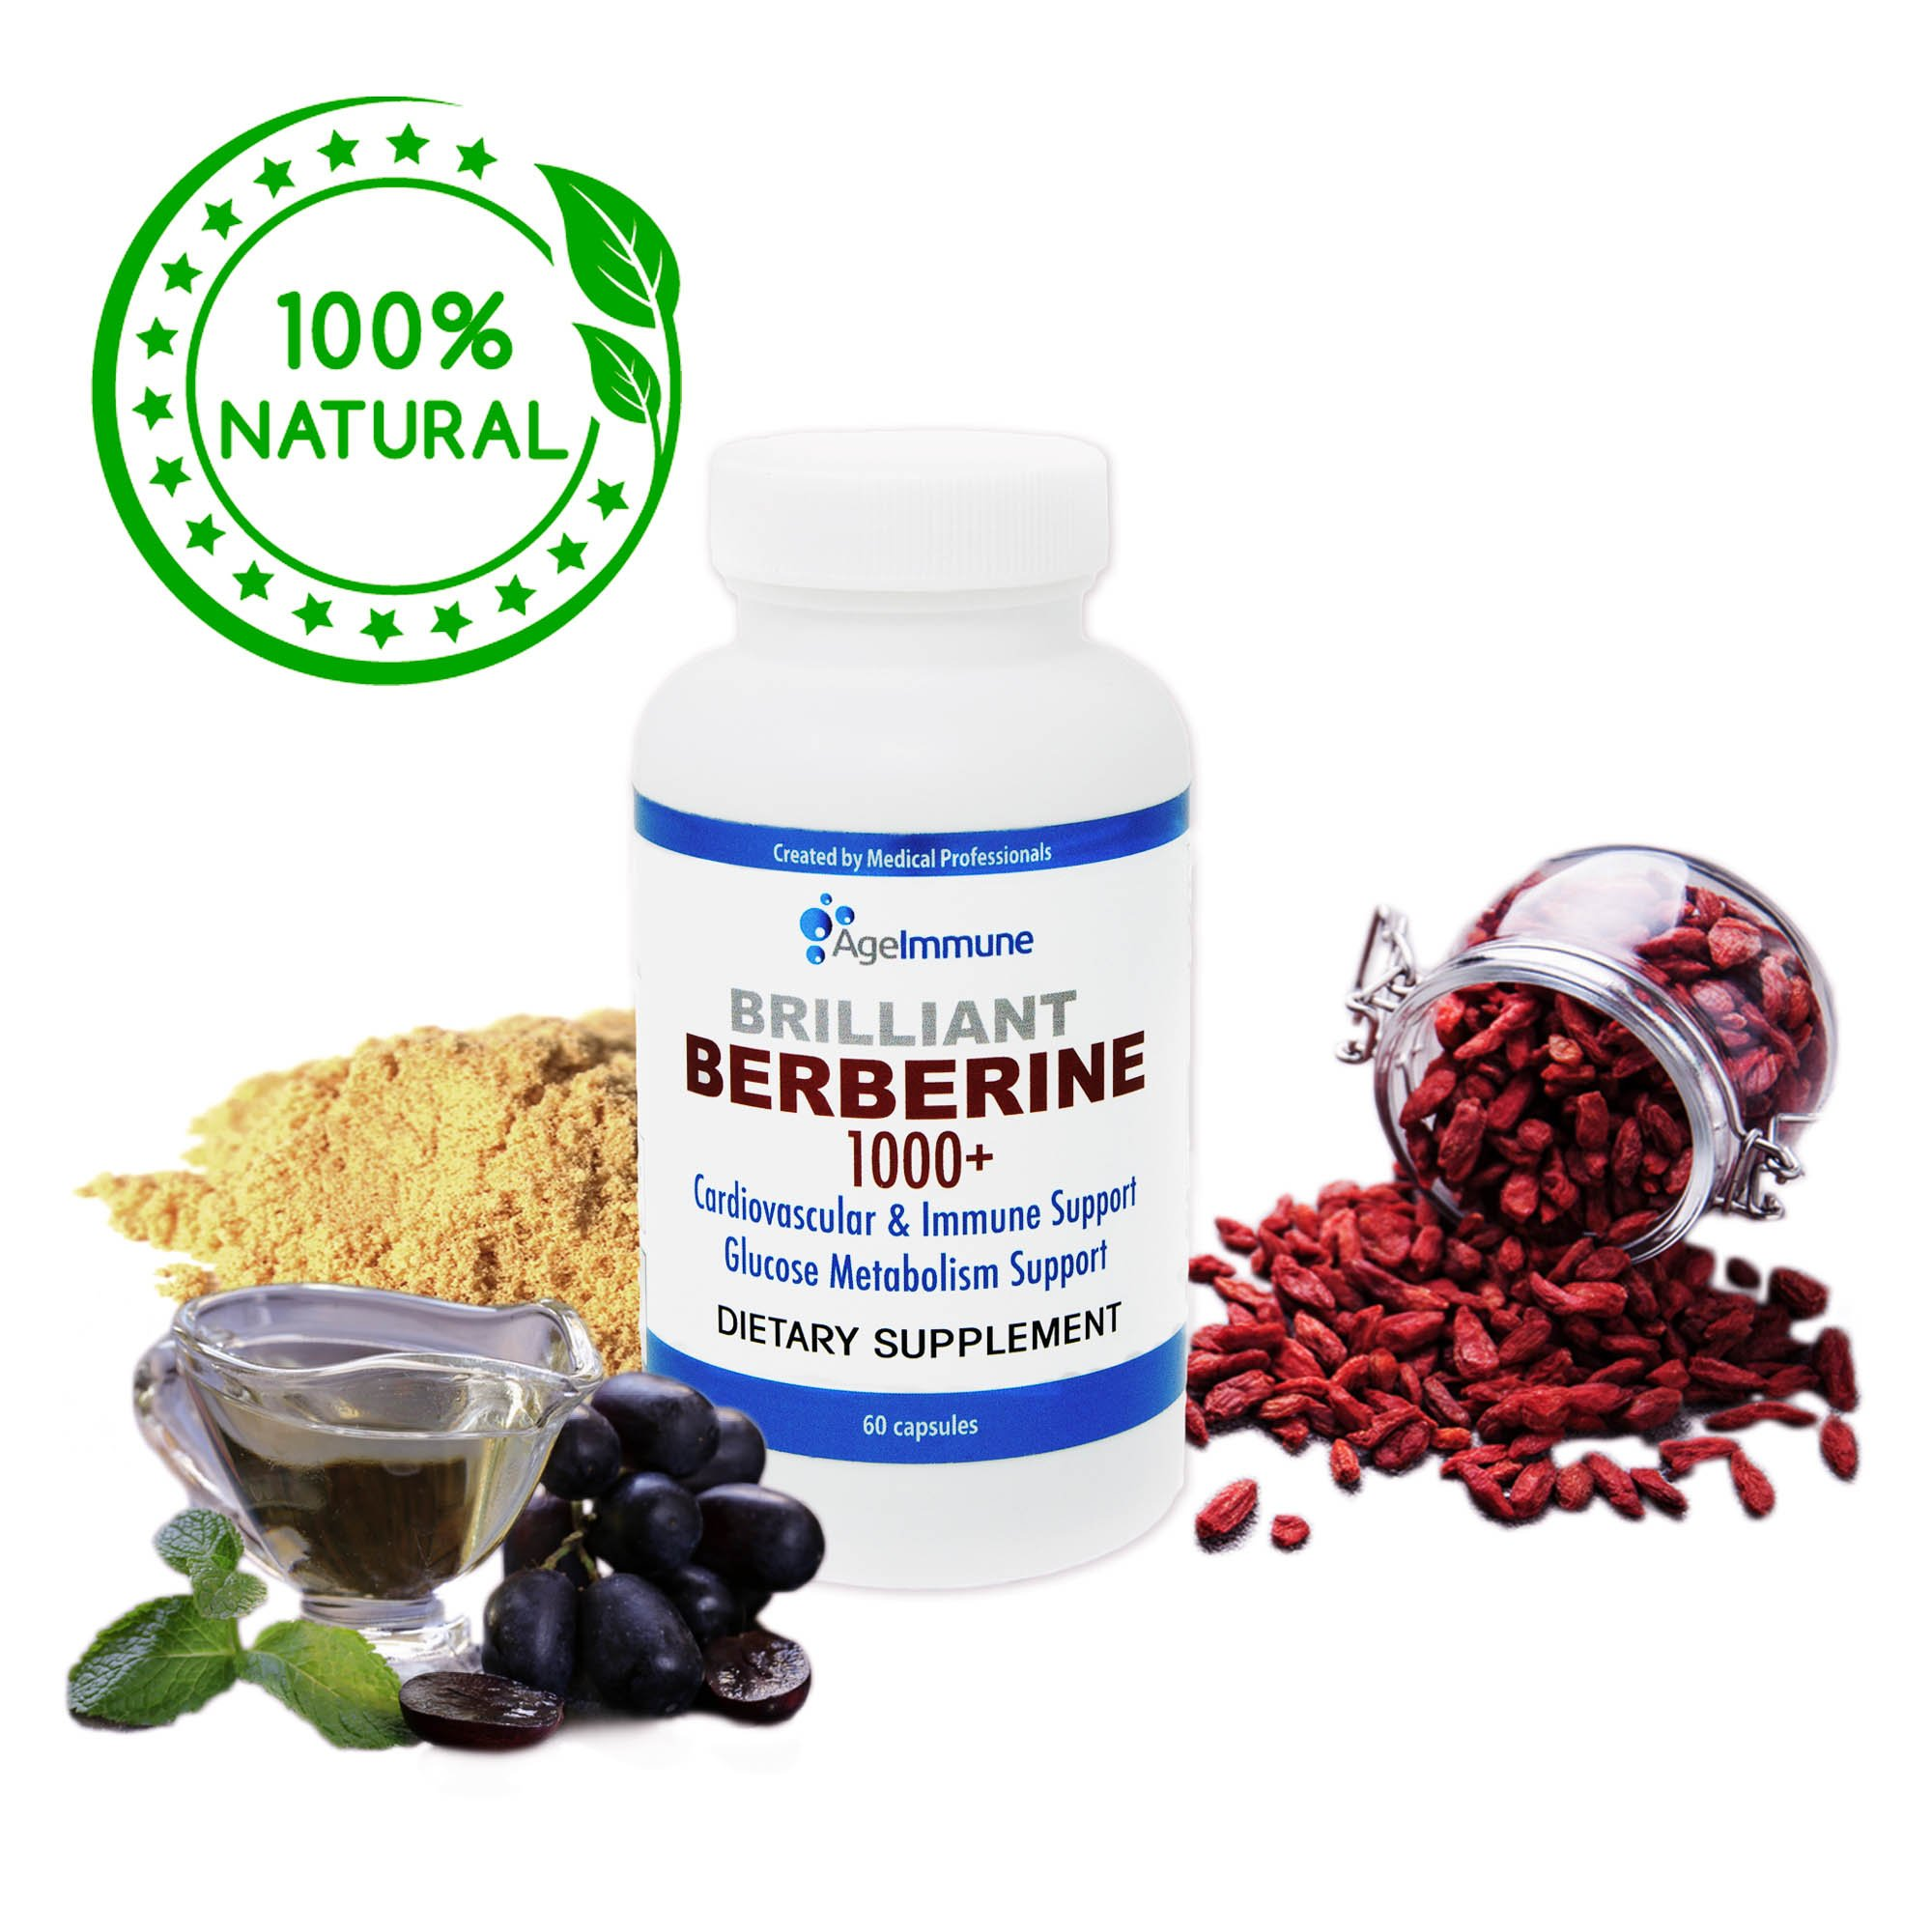 Berberine 1000mg Plus Extra Strength Supplement Complex for Blood Sugar Metabolism Support, Blood Pressure, Cholesterol and Weight Management – Professional Grade Premium Herb, 60 Capsules